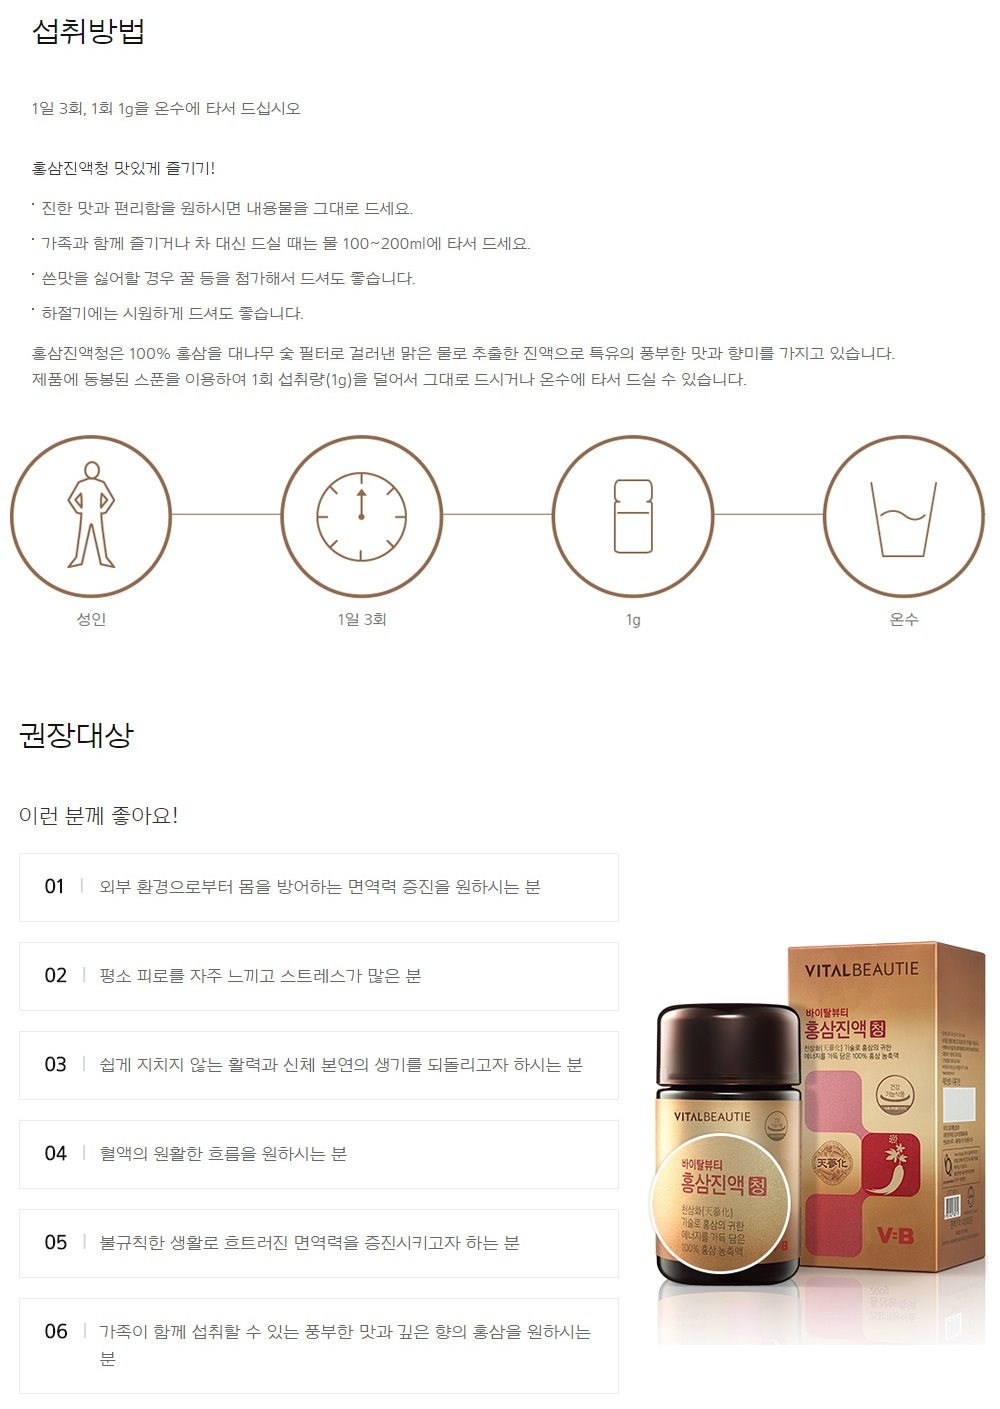 Vital Beautie Red Ginseng Essence korean beauty care supplement store malaysia germany france finland 2